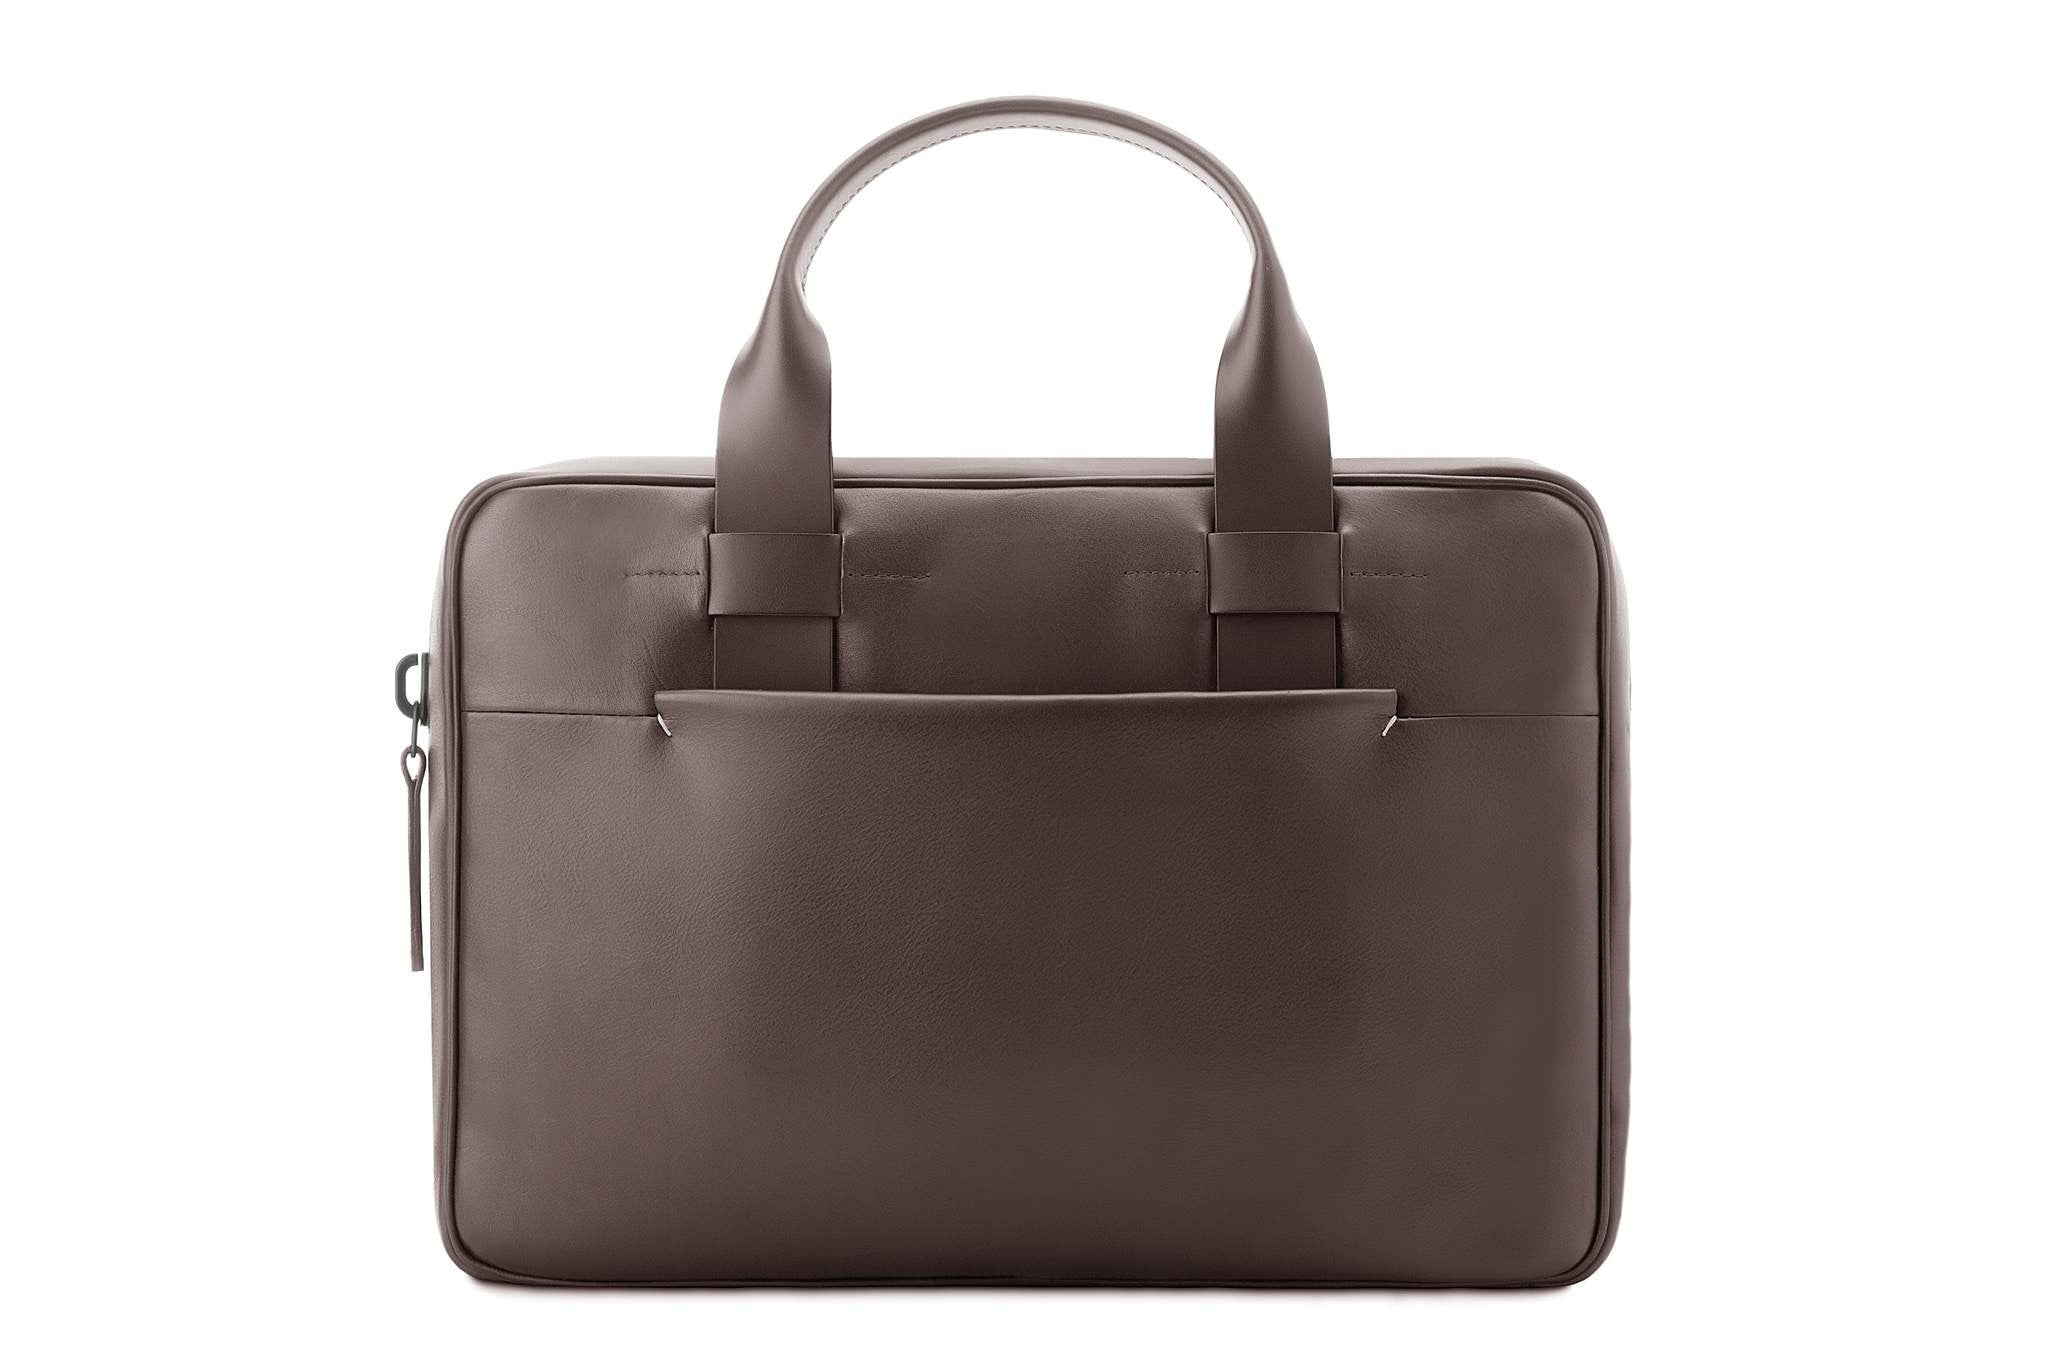 Brown leather briefcase, stylish